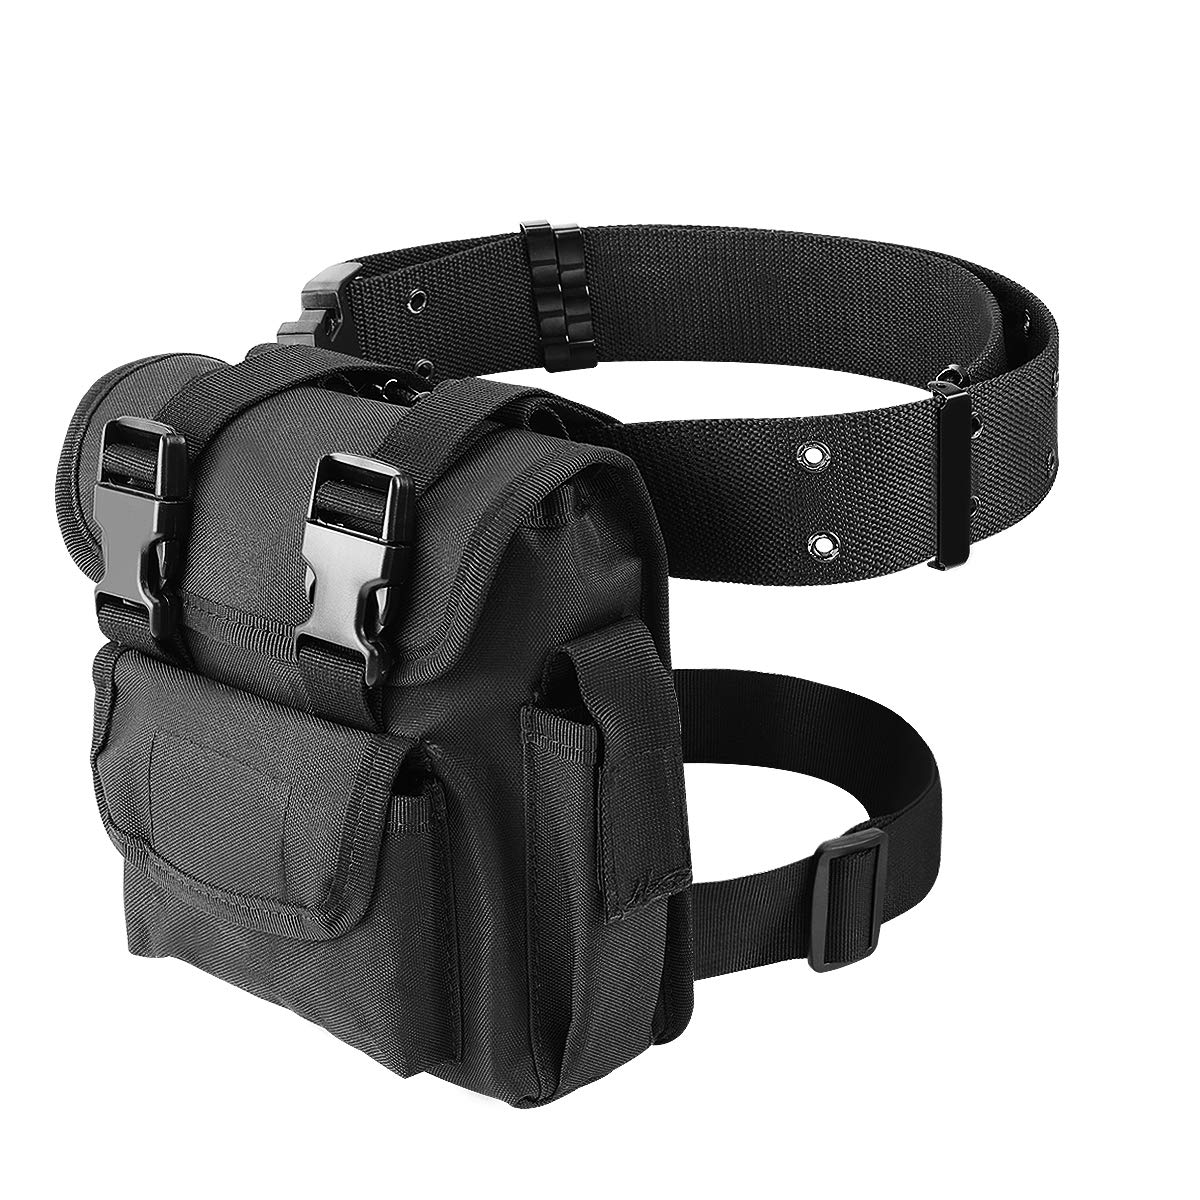 ZONE FR Leg Bag Military Tactical Pouch Drop Leg Waist Bags for Paintball Airsoft Cycling Hiking